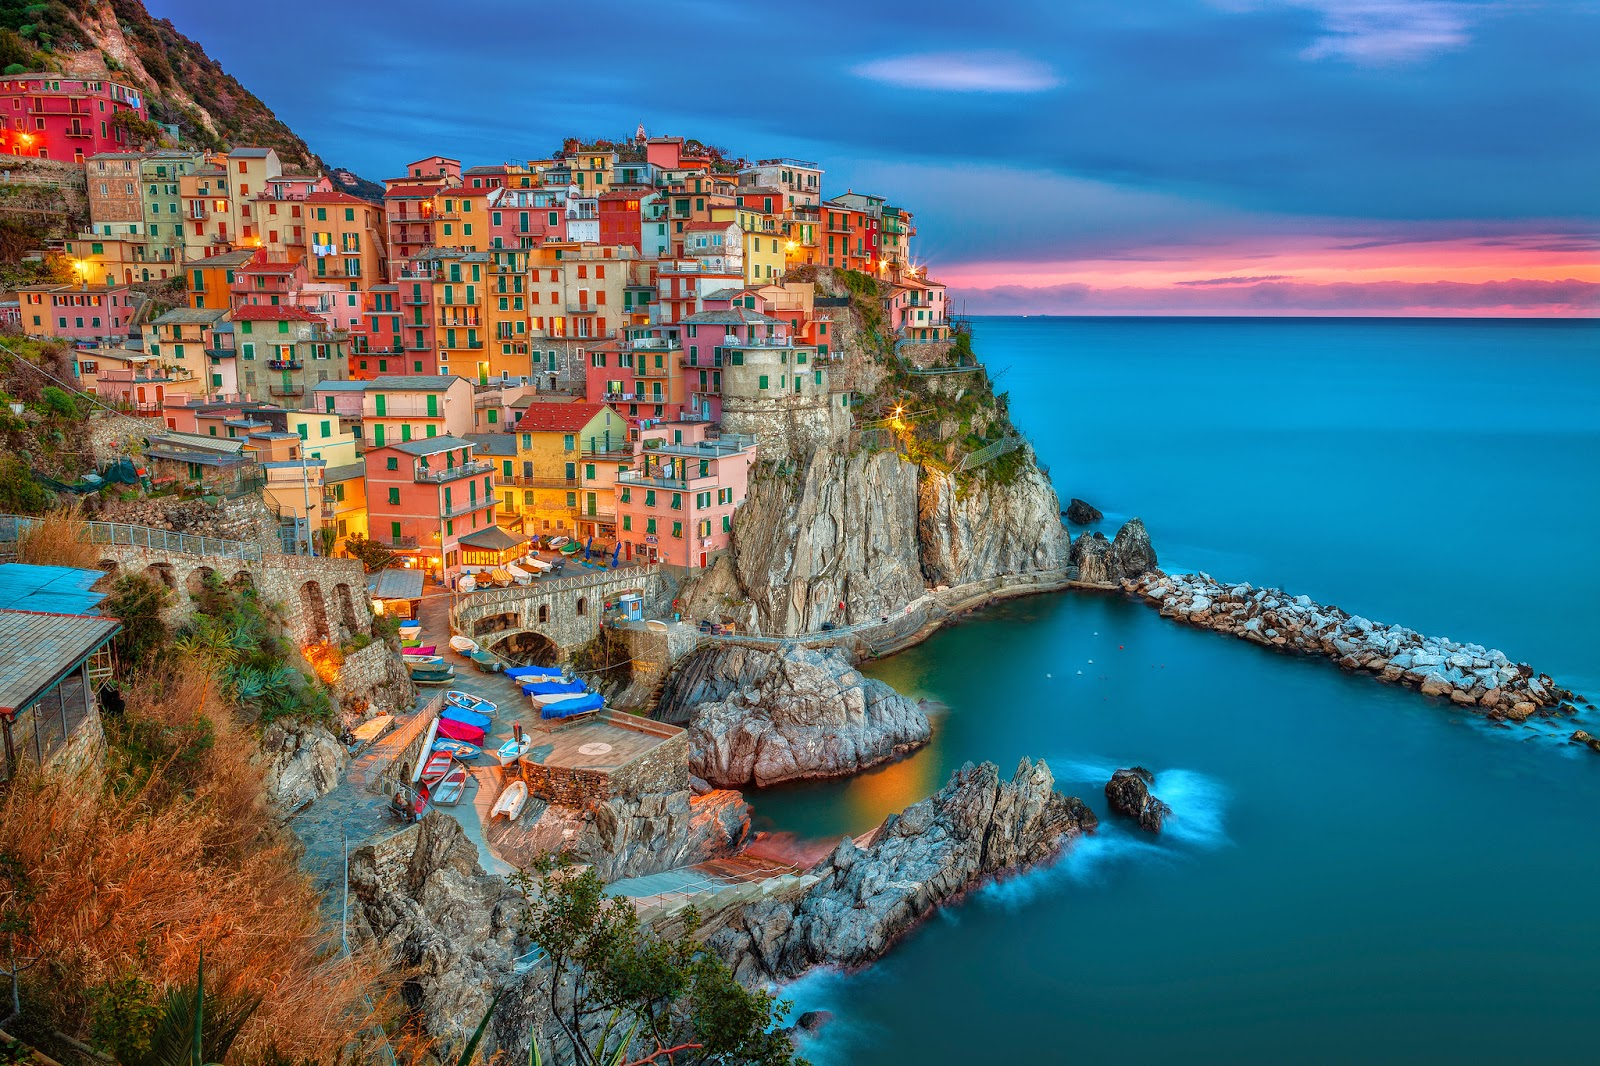 Top 5 places to go on vacation in September